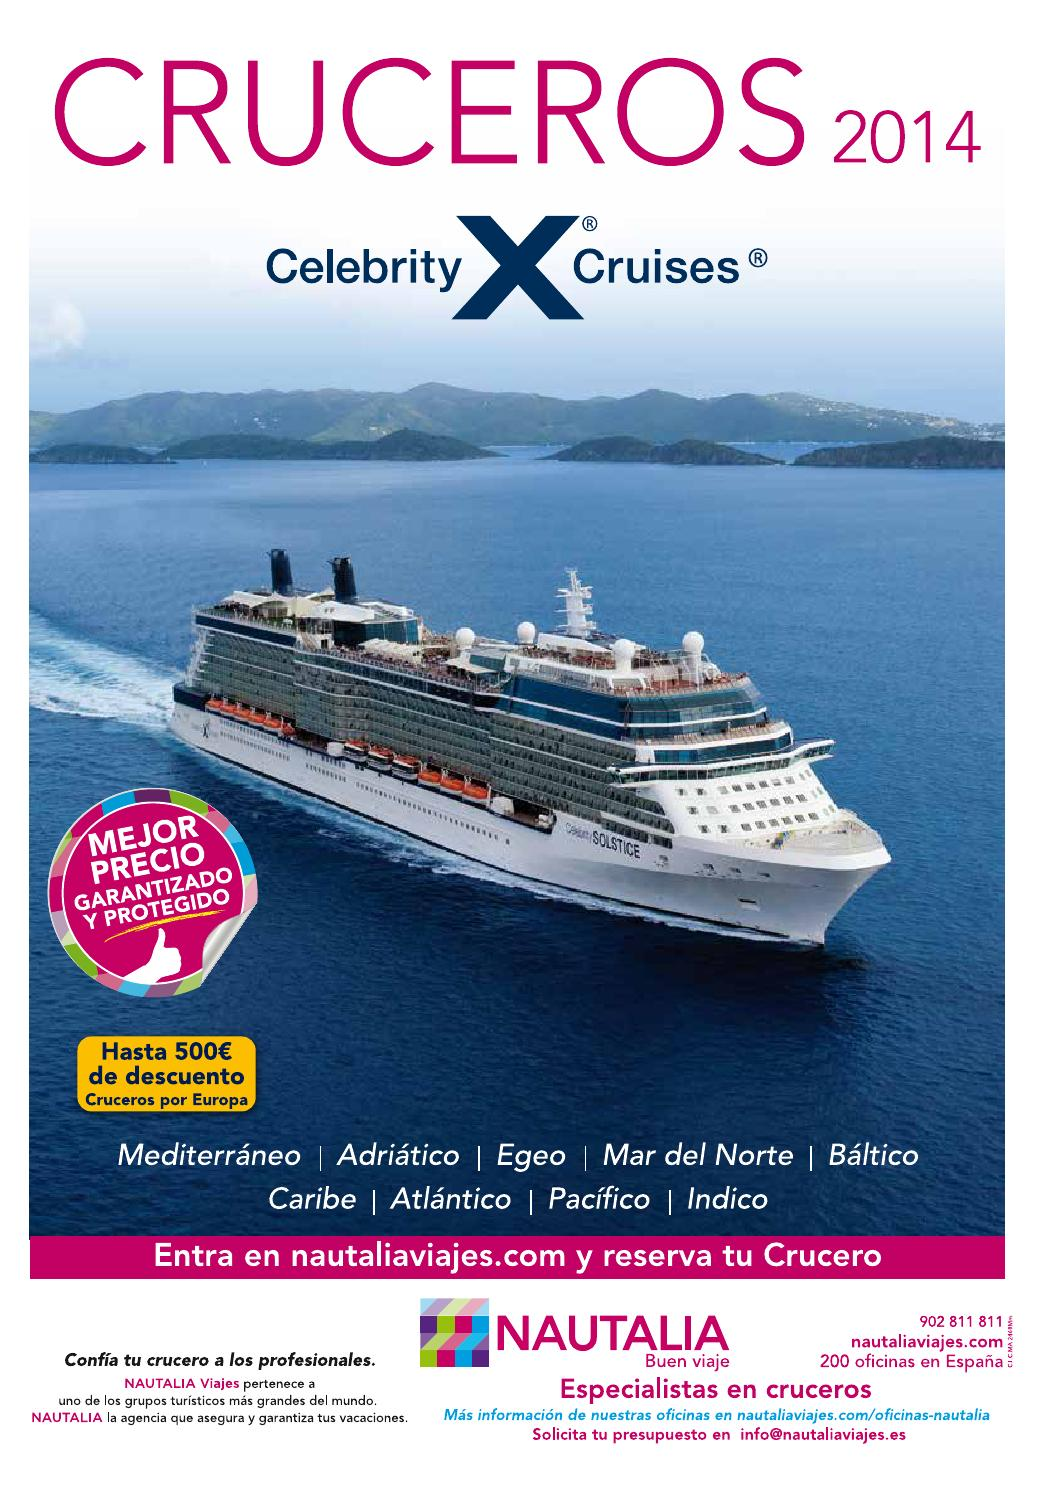 Celebrity Equinox Activities, Entertainment & Amenities ...